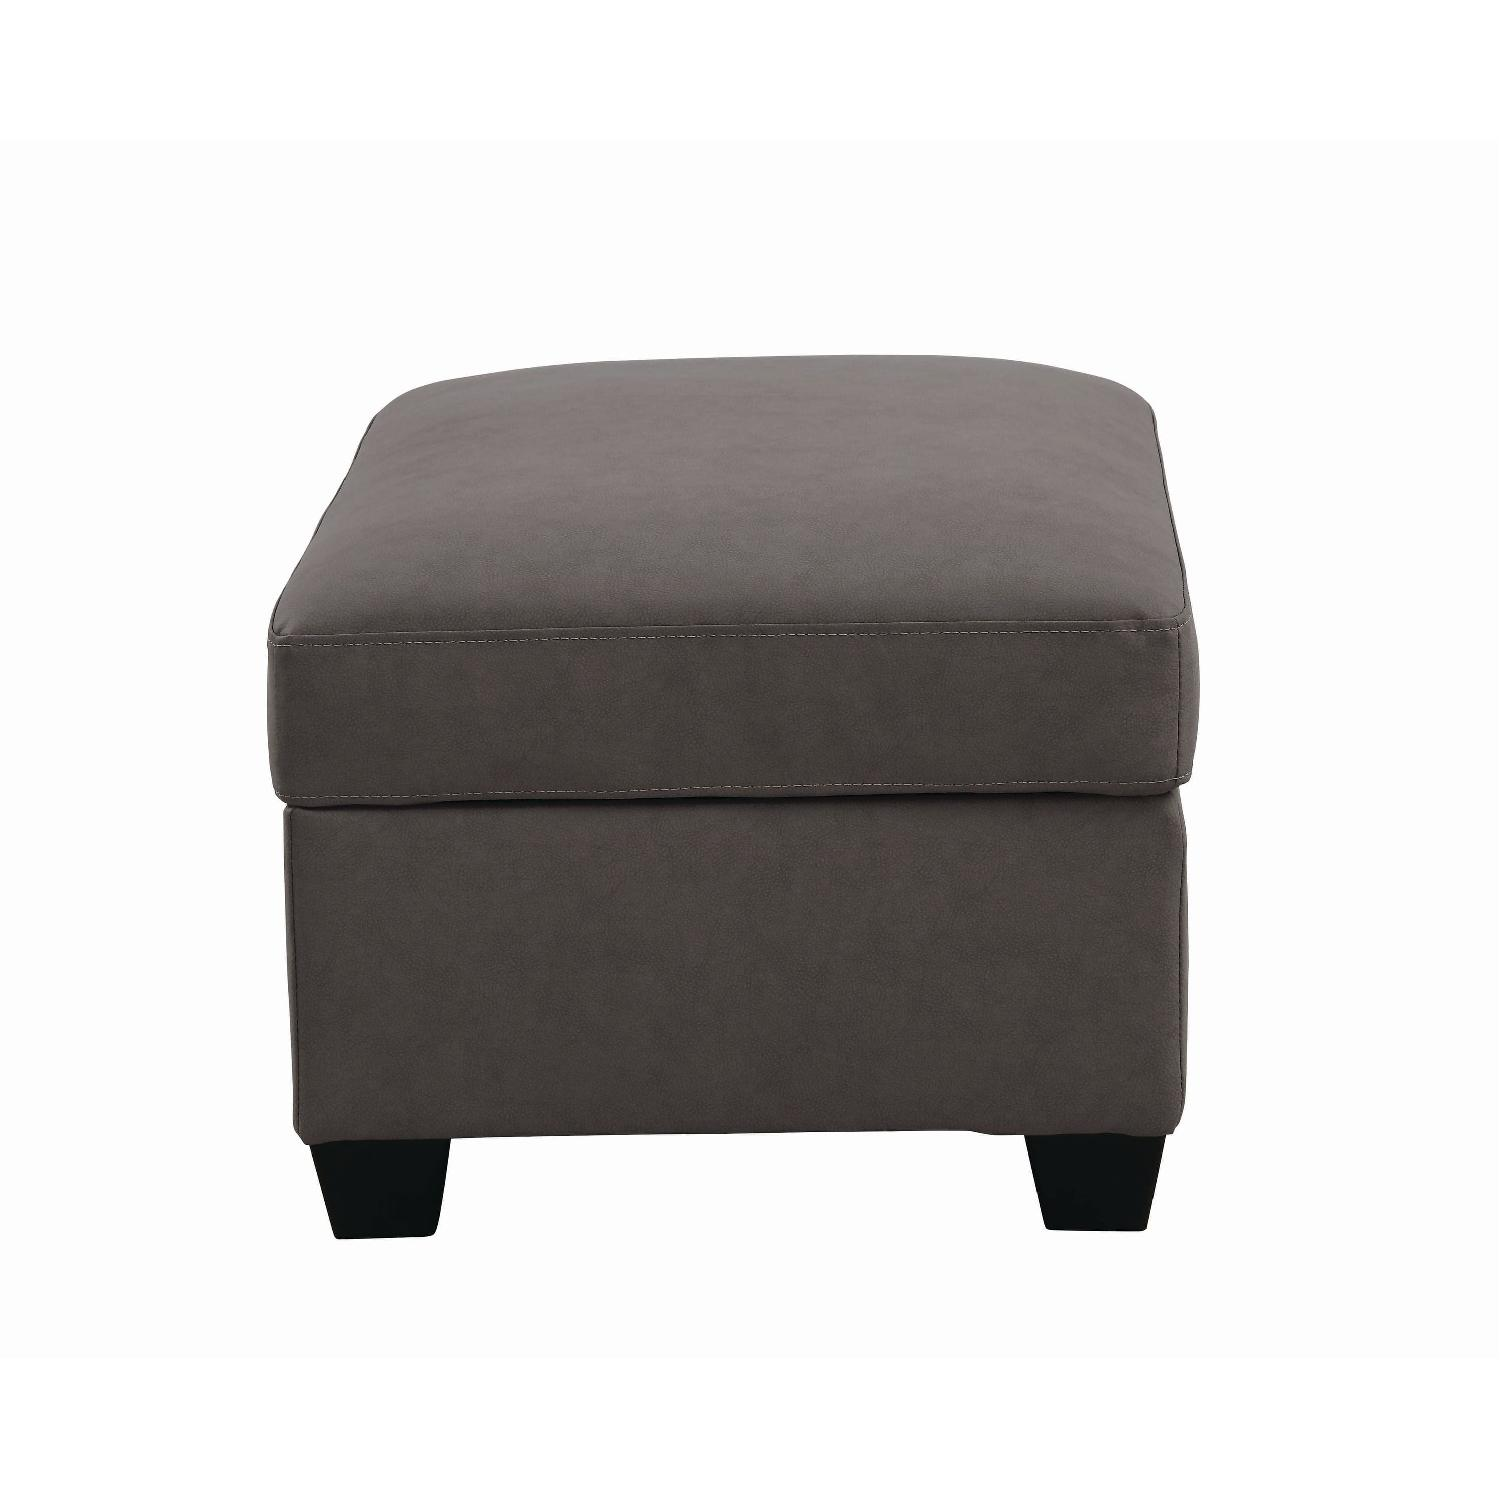 Storage Ottoman in Brown Leatherette